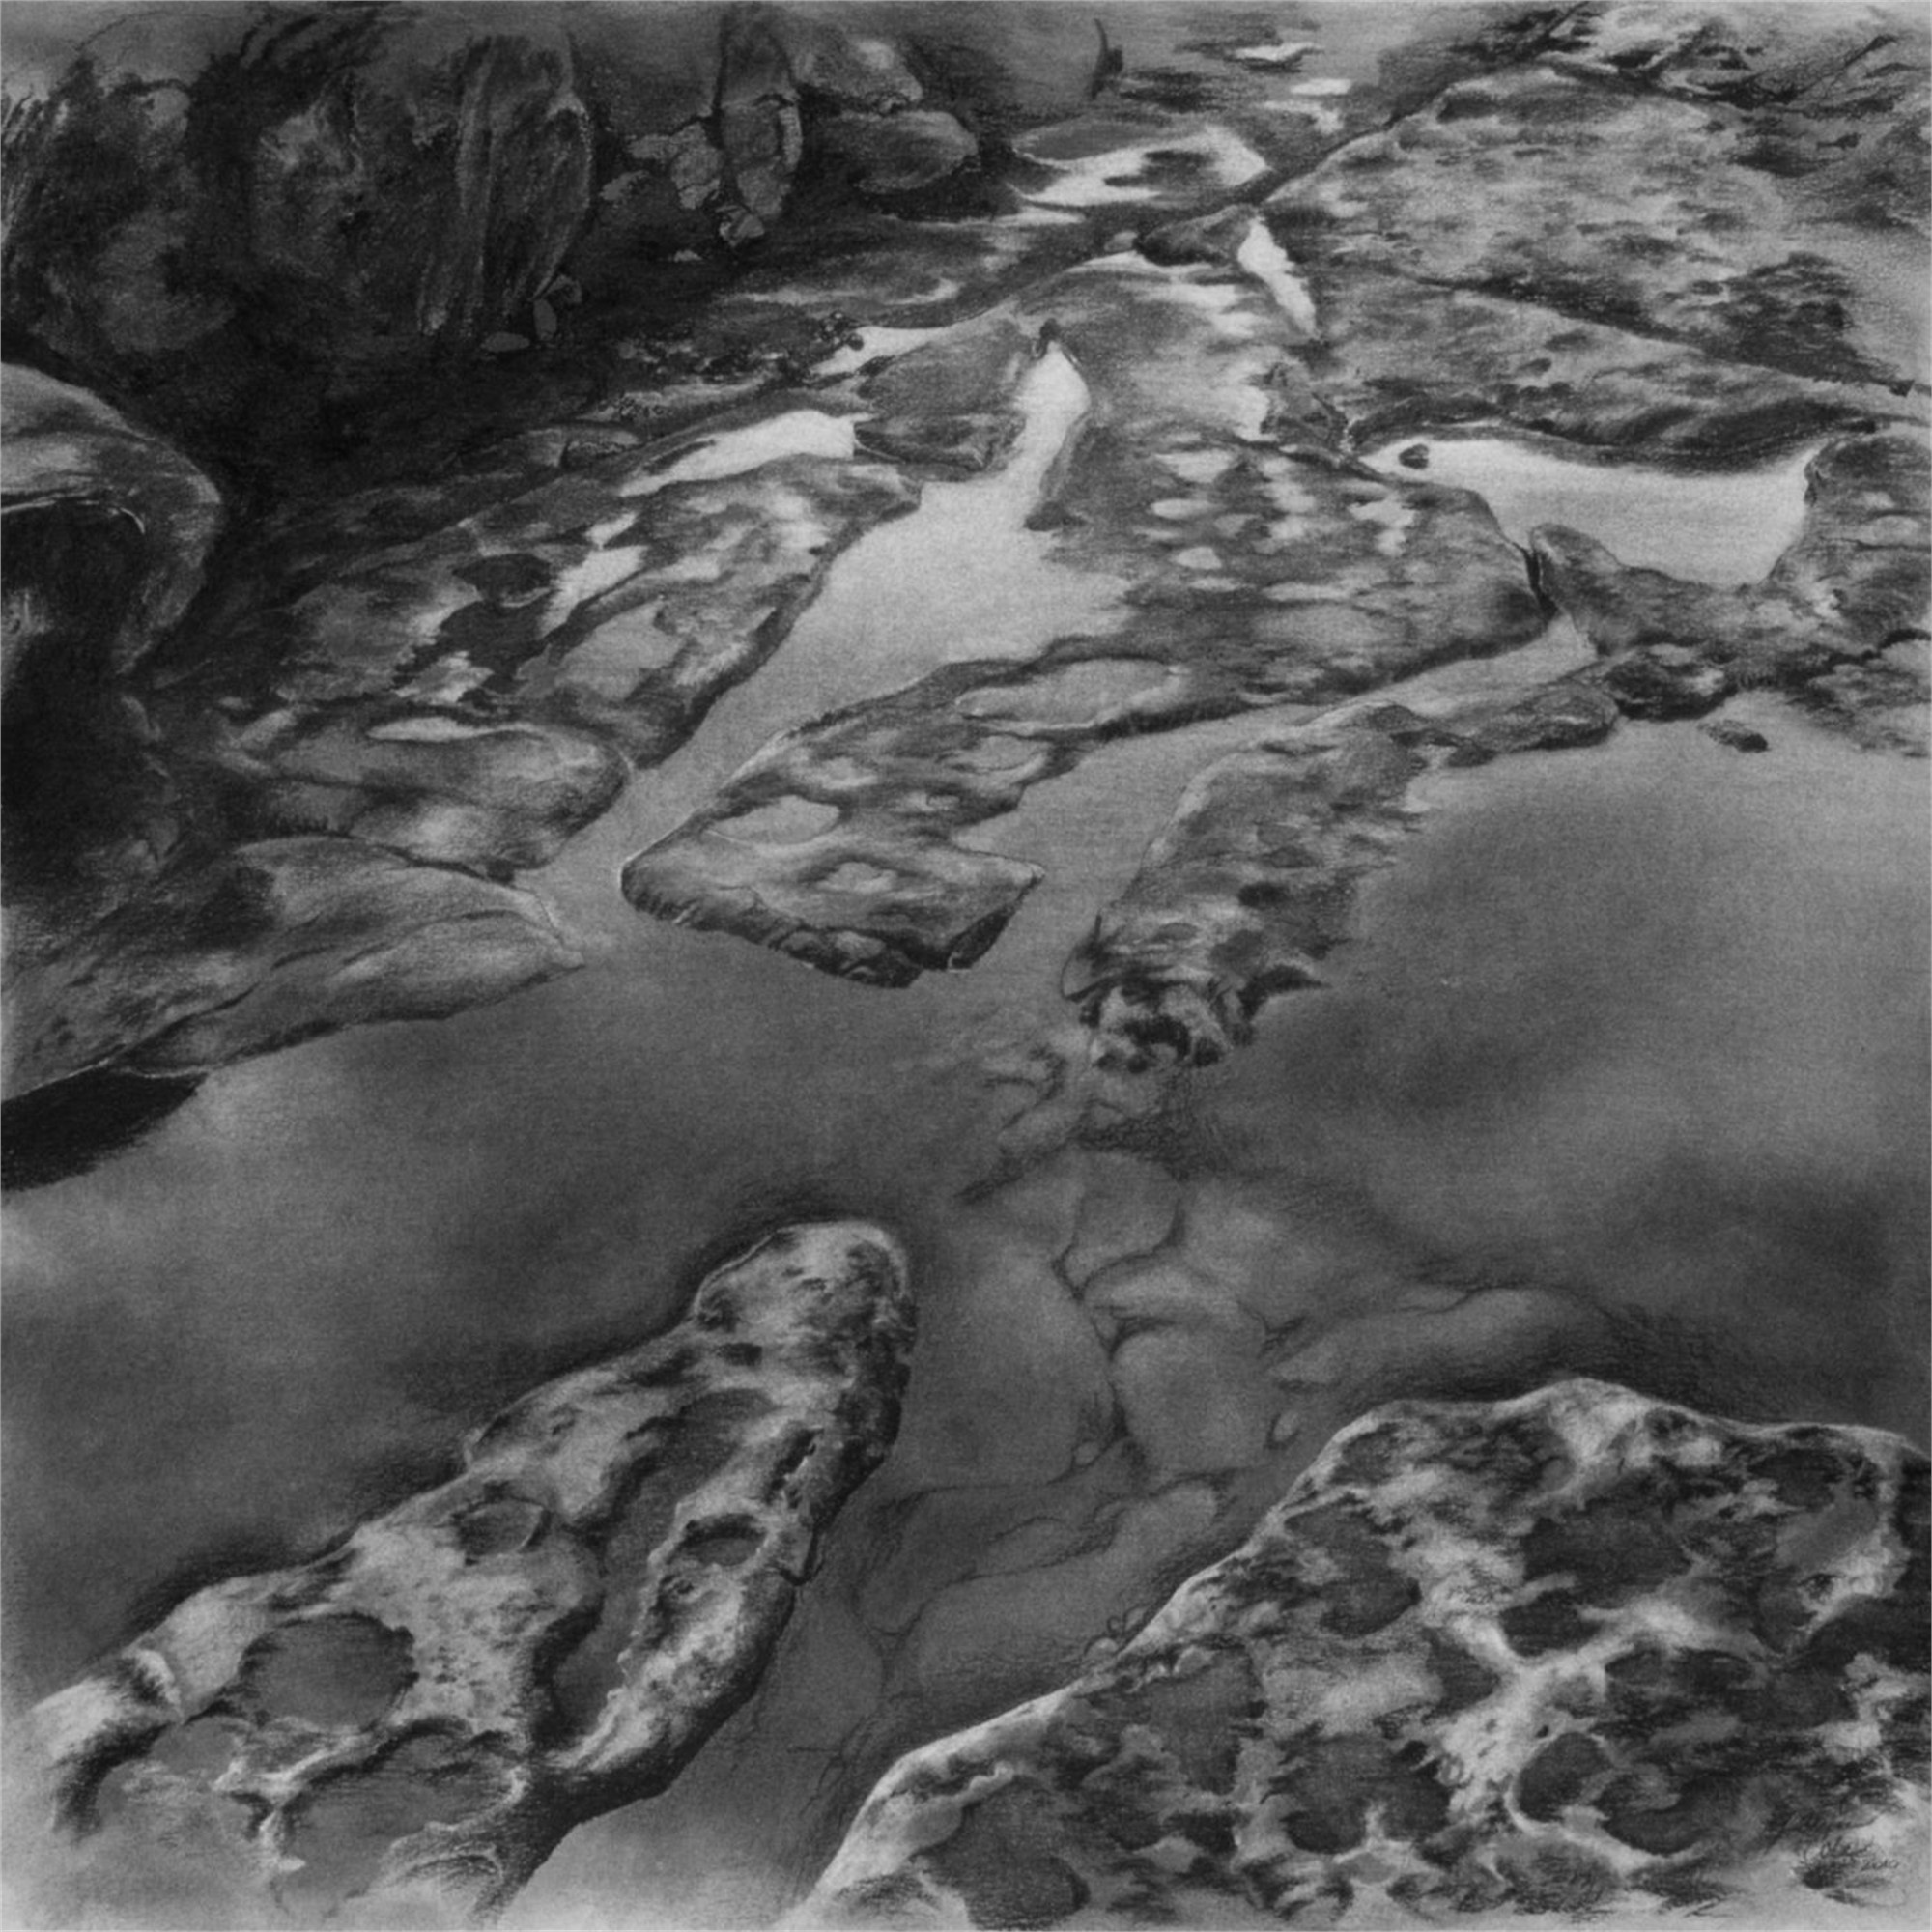 Intertidal by Robin Cole